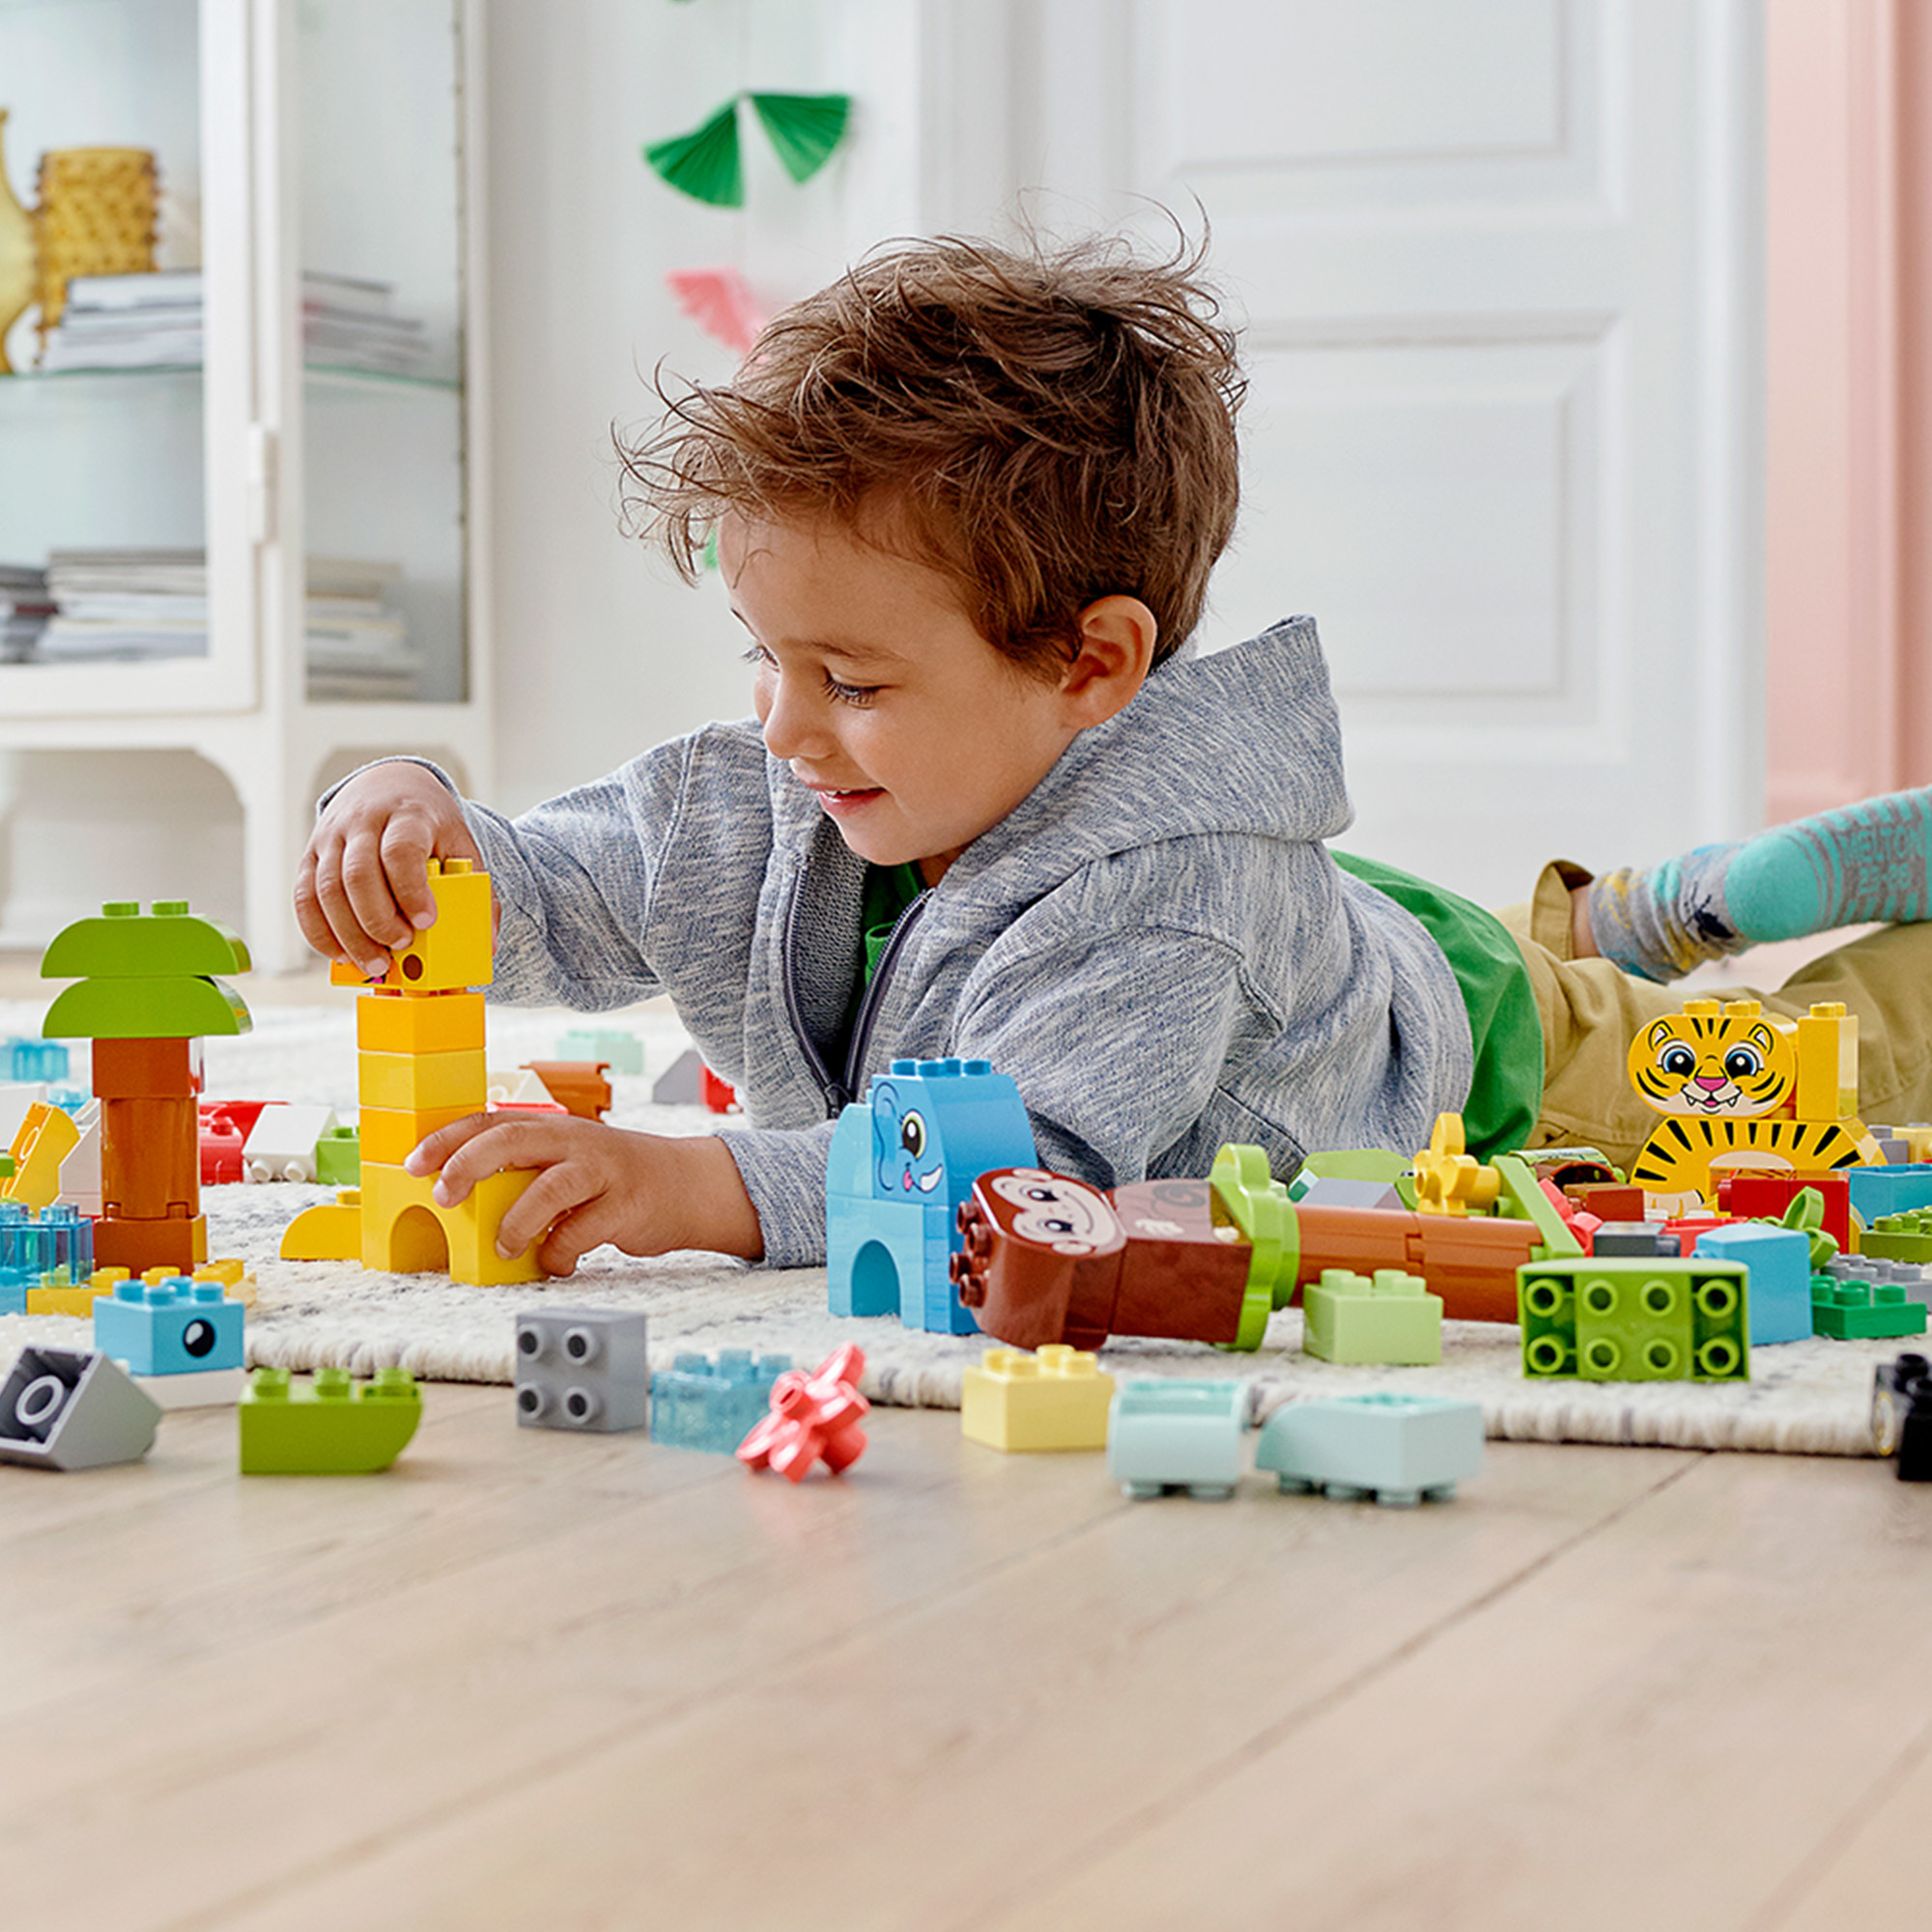 A child playing with the brightly colored LEGO blocks